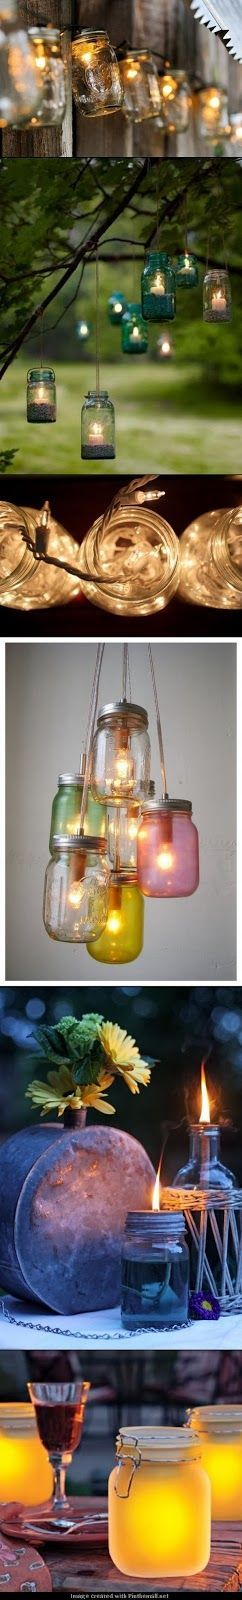 Hang jars with candles